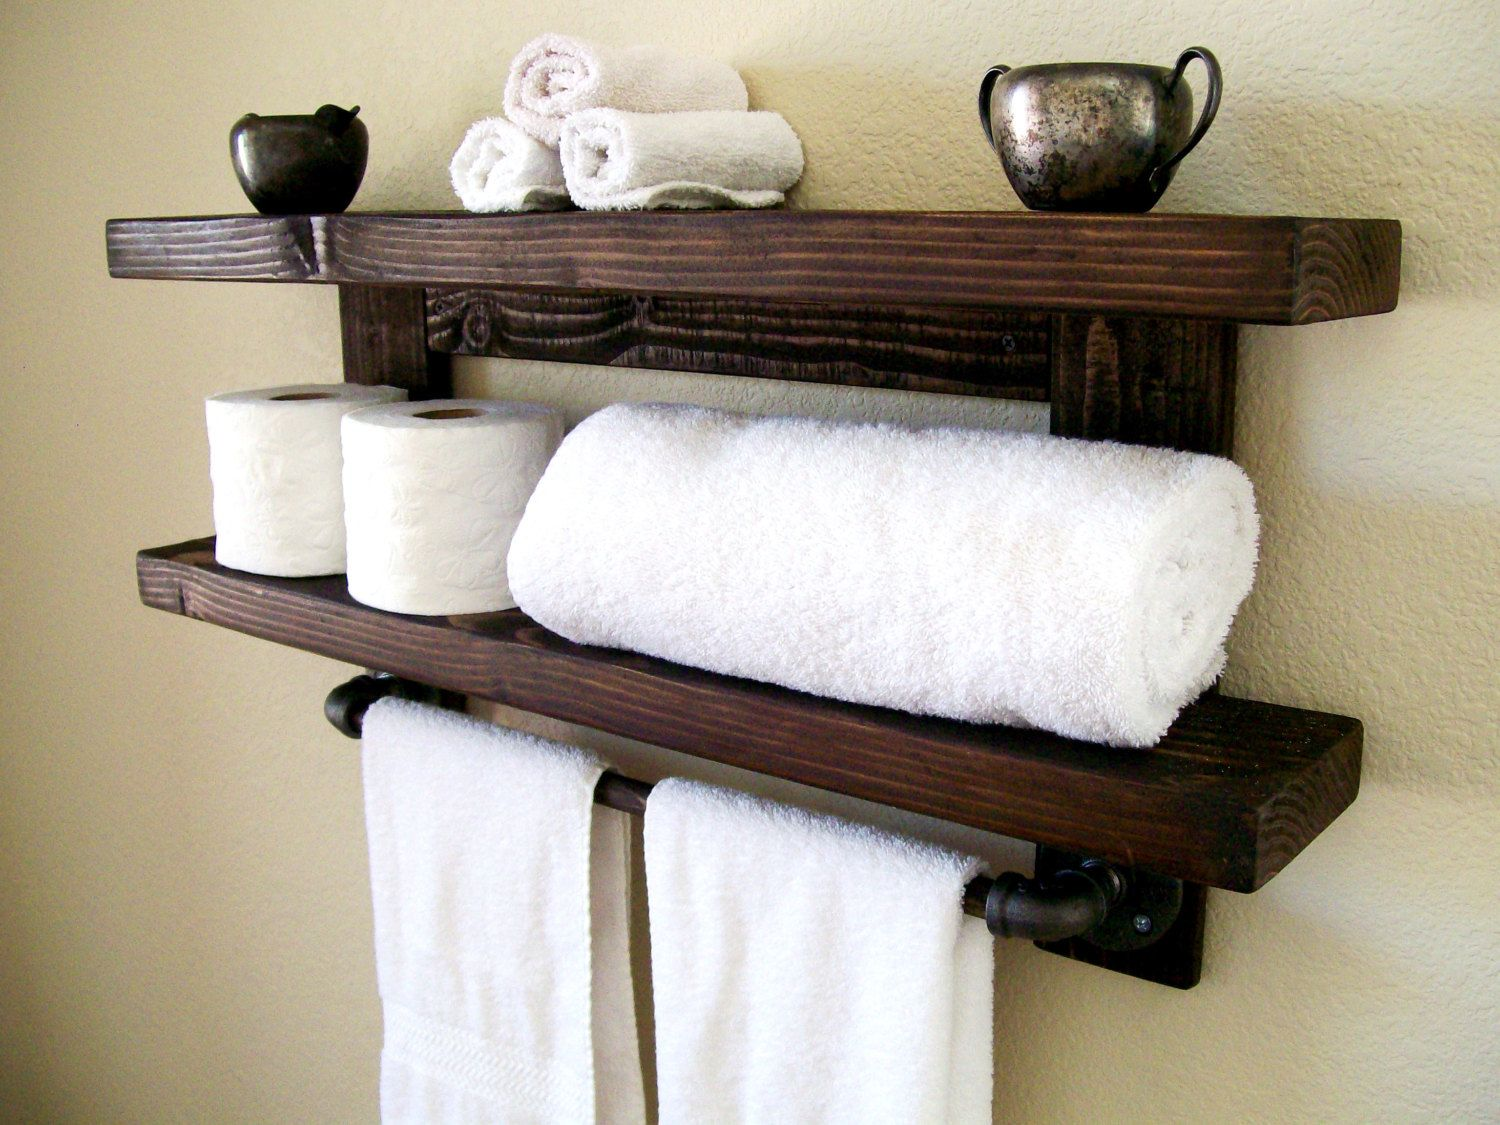 Installing Bathroom Towel Racks Bathroom Shelves For Towels